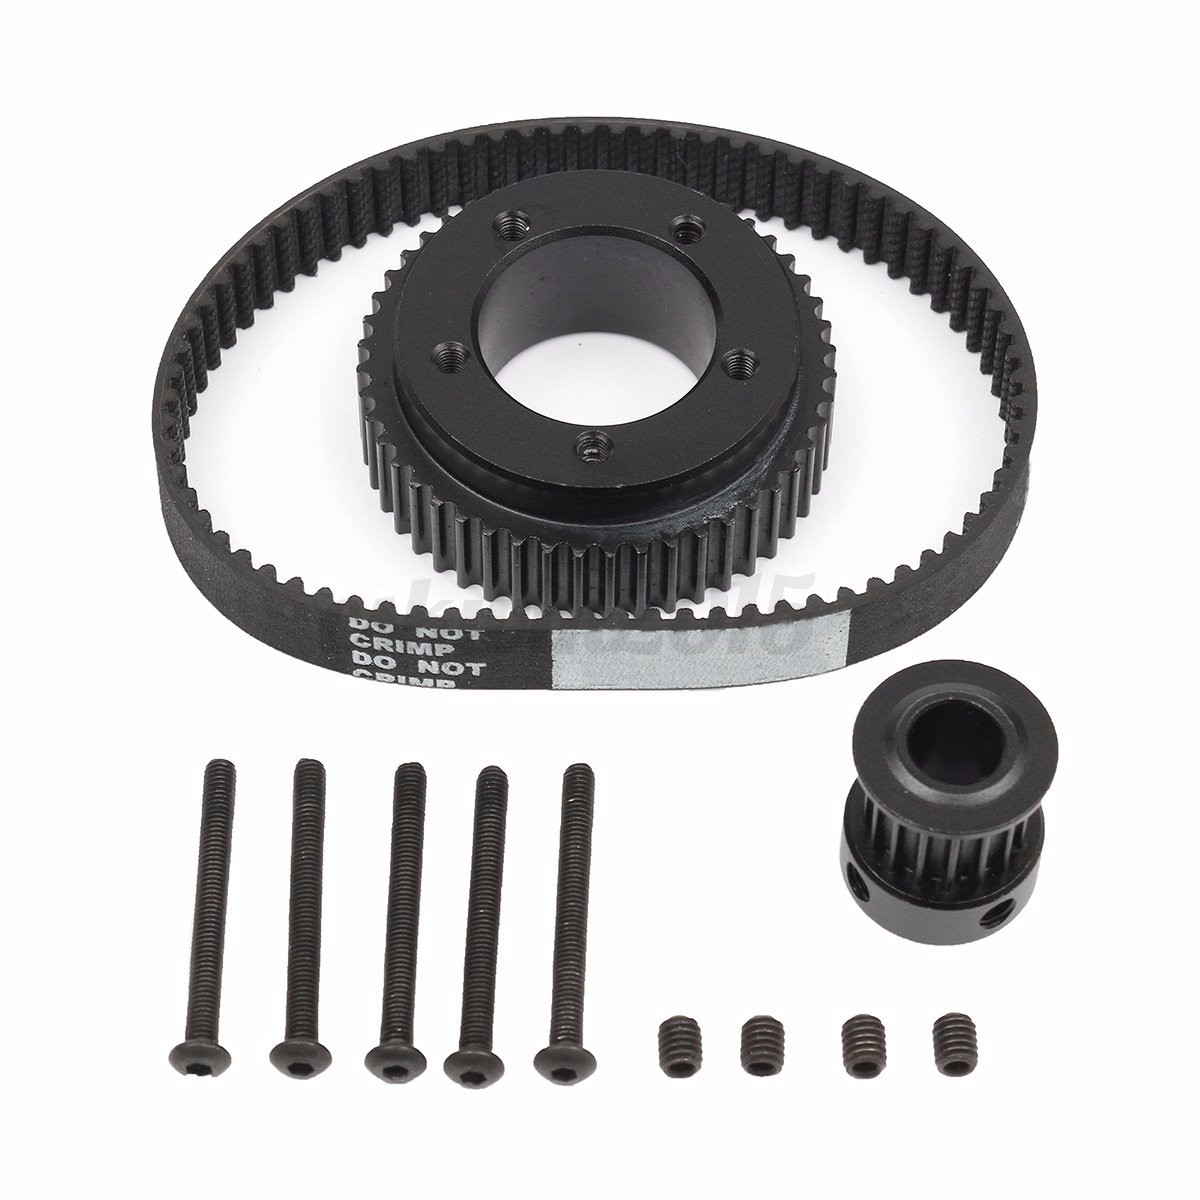 DIY-Electric-Skateboard-Flywheel-Pulley-Drive-Kit-10MM-Belt-For-72-70MM-Wheels